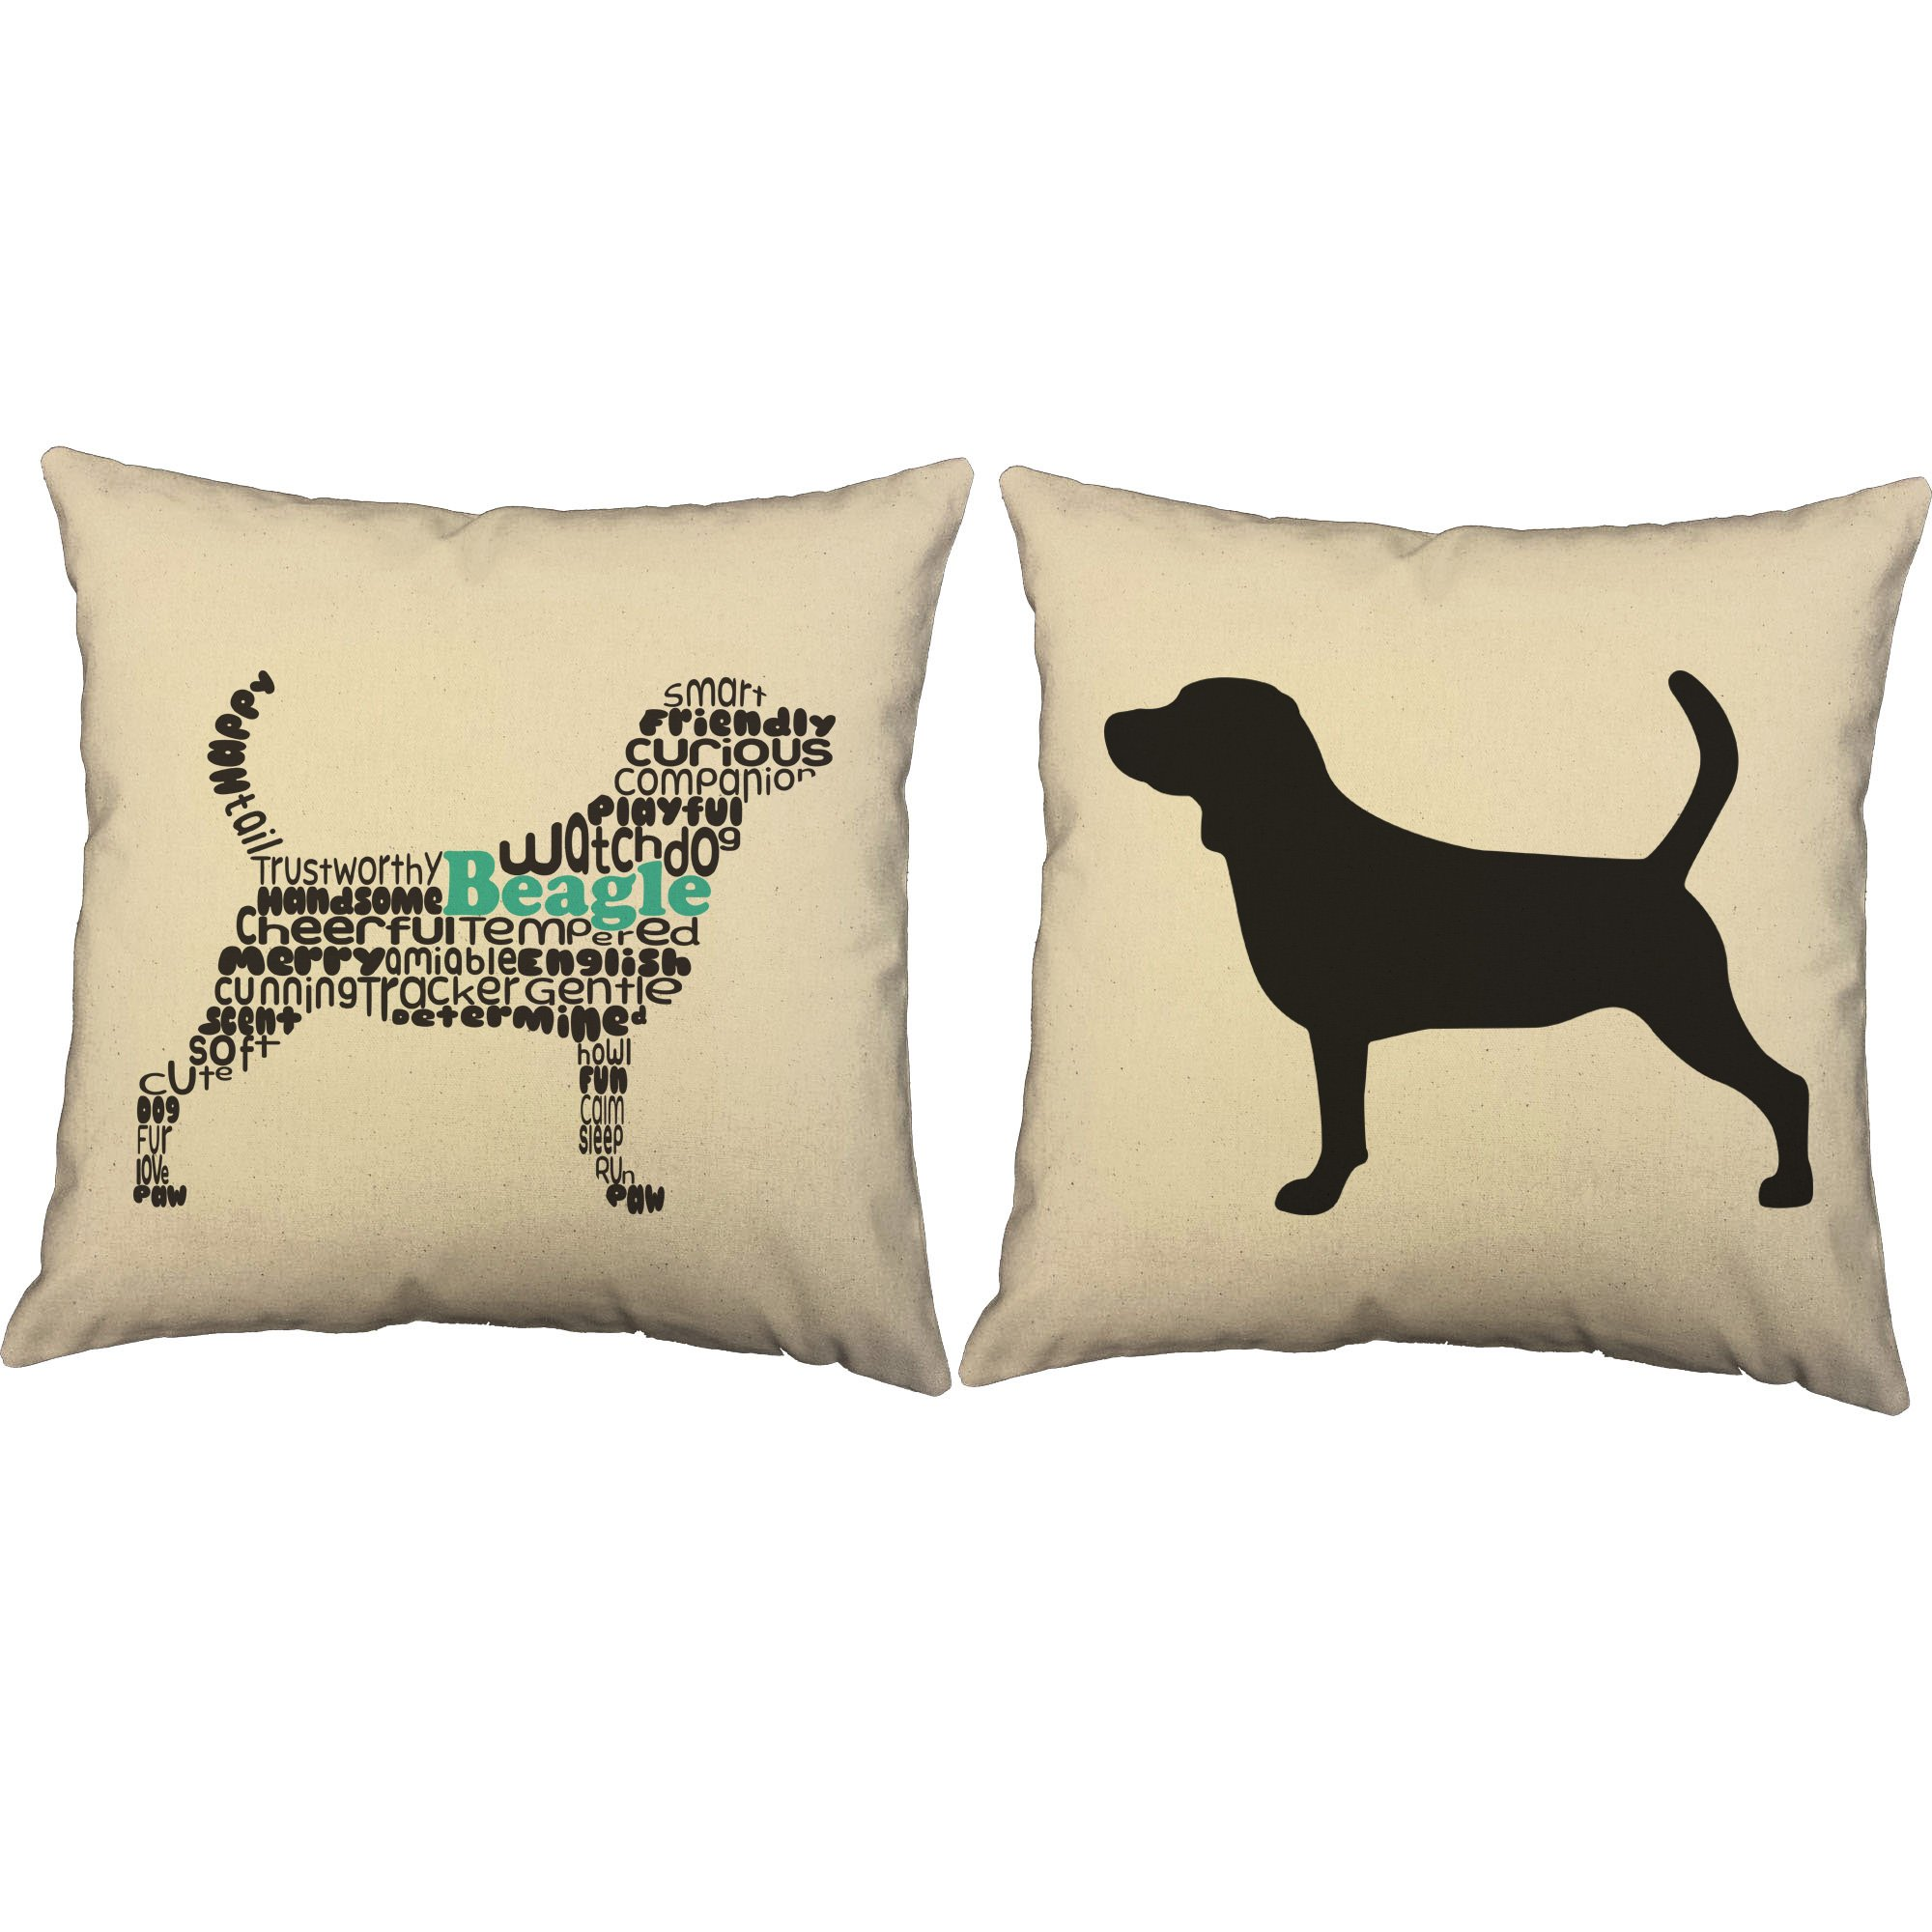 Set of 2 RoomCraft Typography Beagle Throw Pillows 20x20 Square Natural Cotton Dog Breed Cushions